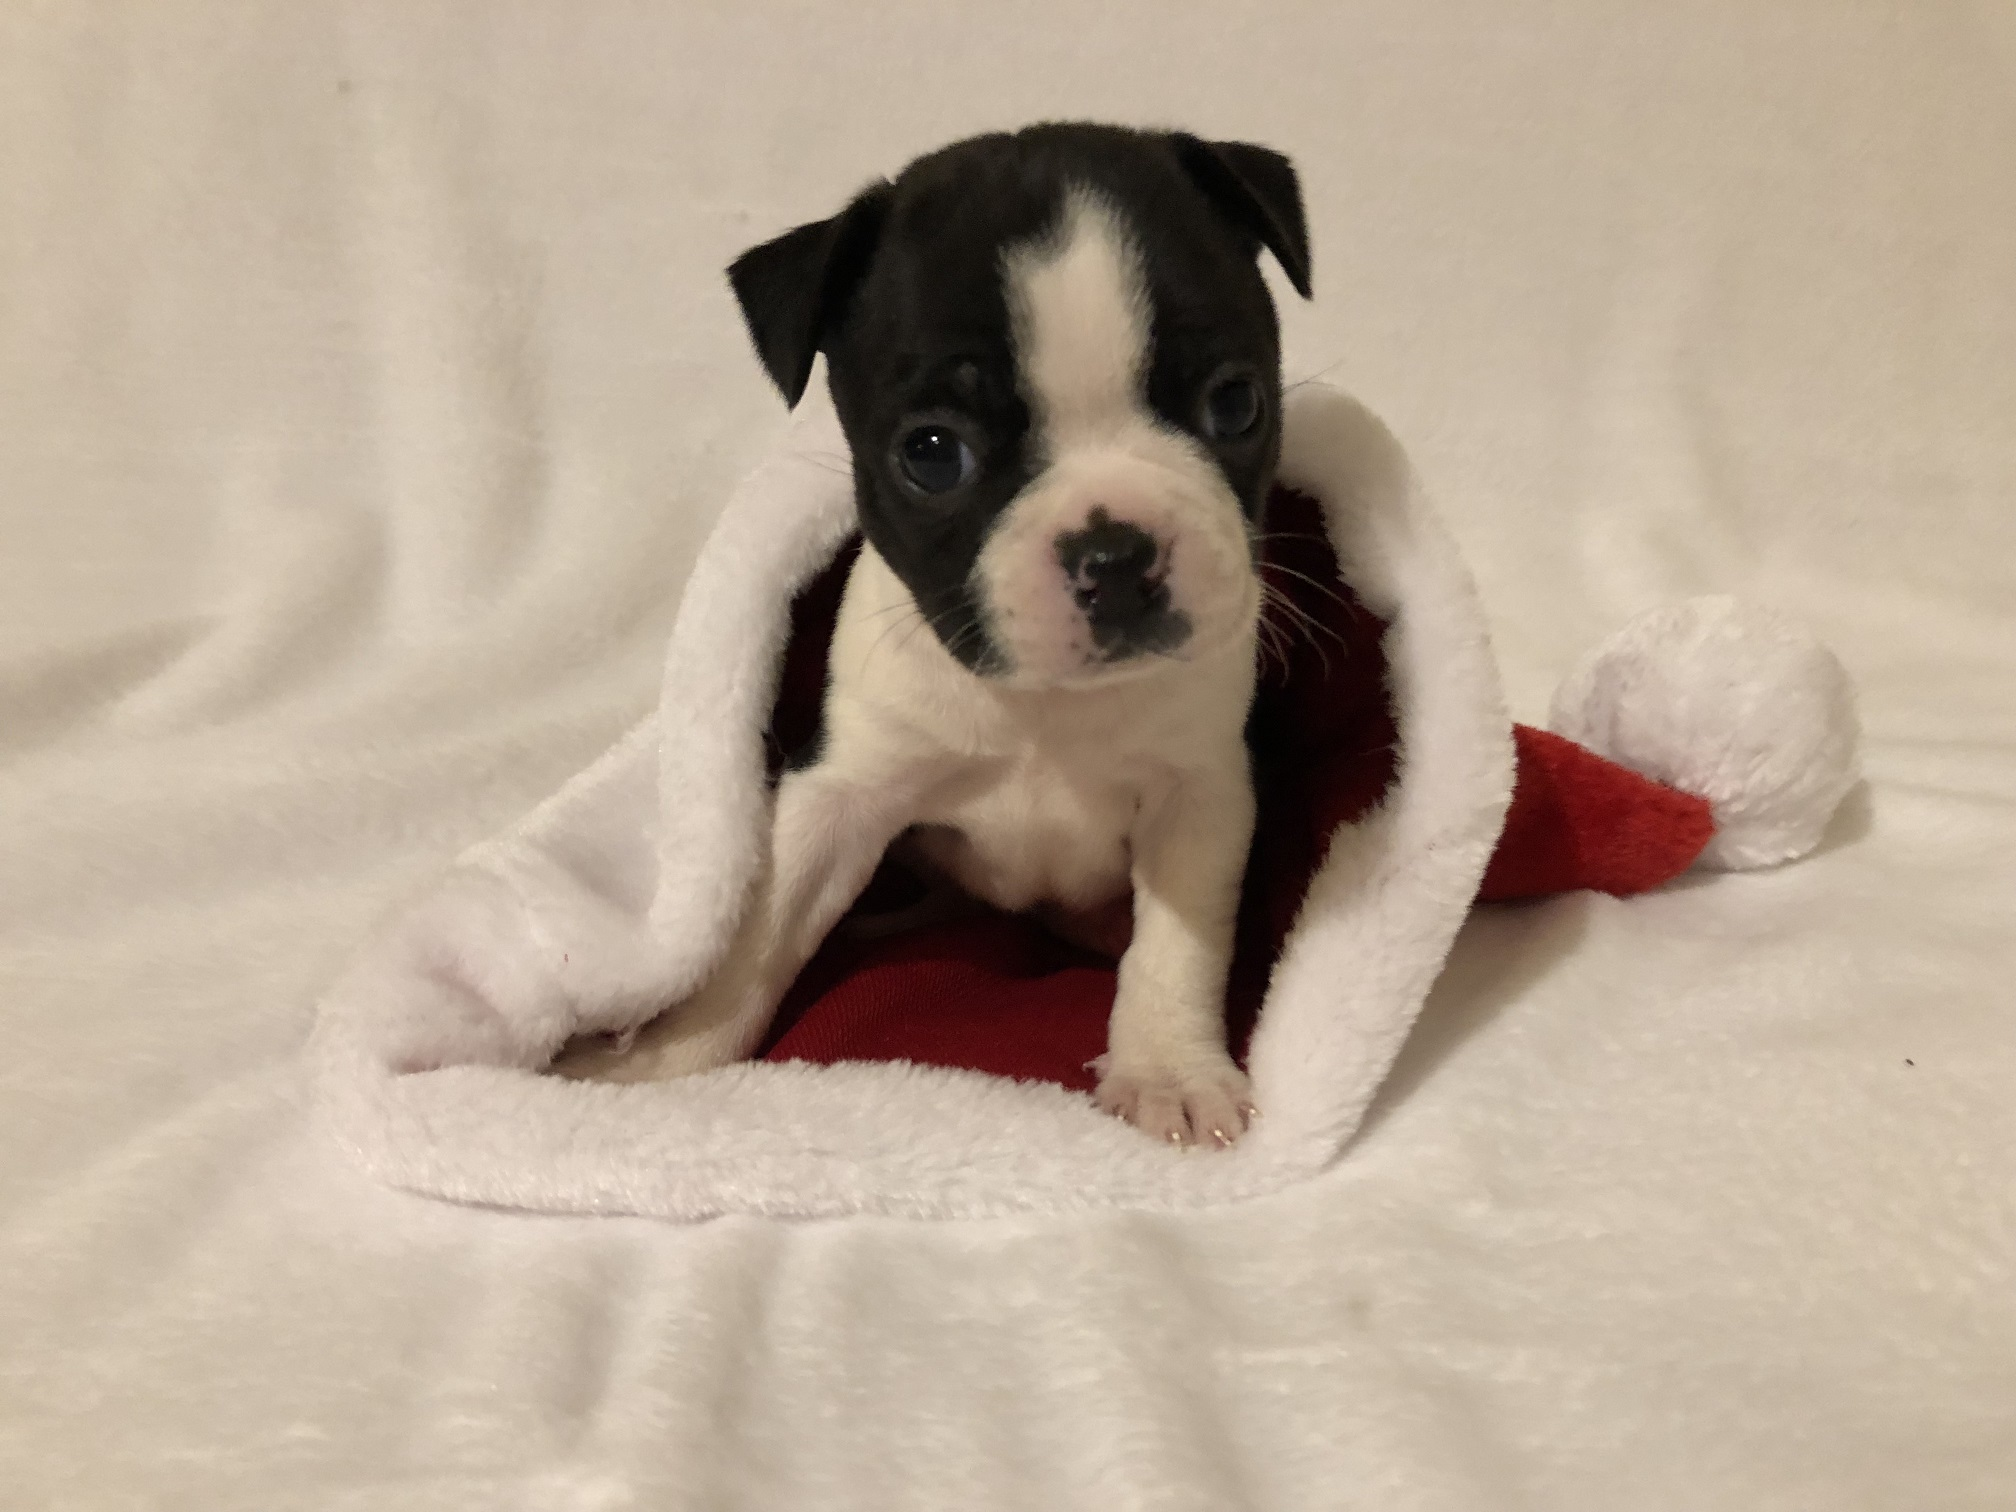 Boston Terrier Puppies Puppies are current with shots and dewormed Ready for new homes Puppies ar